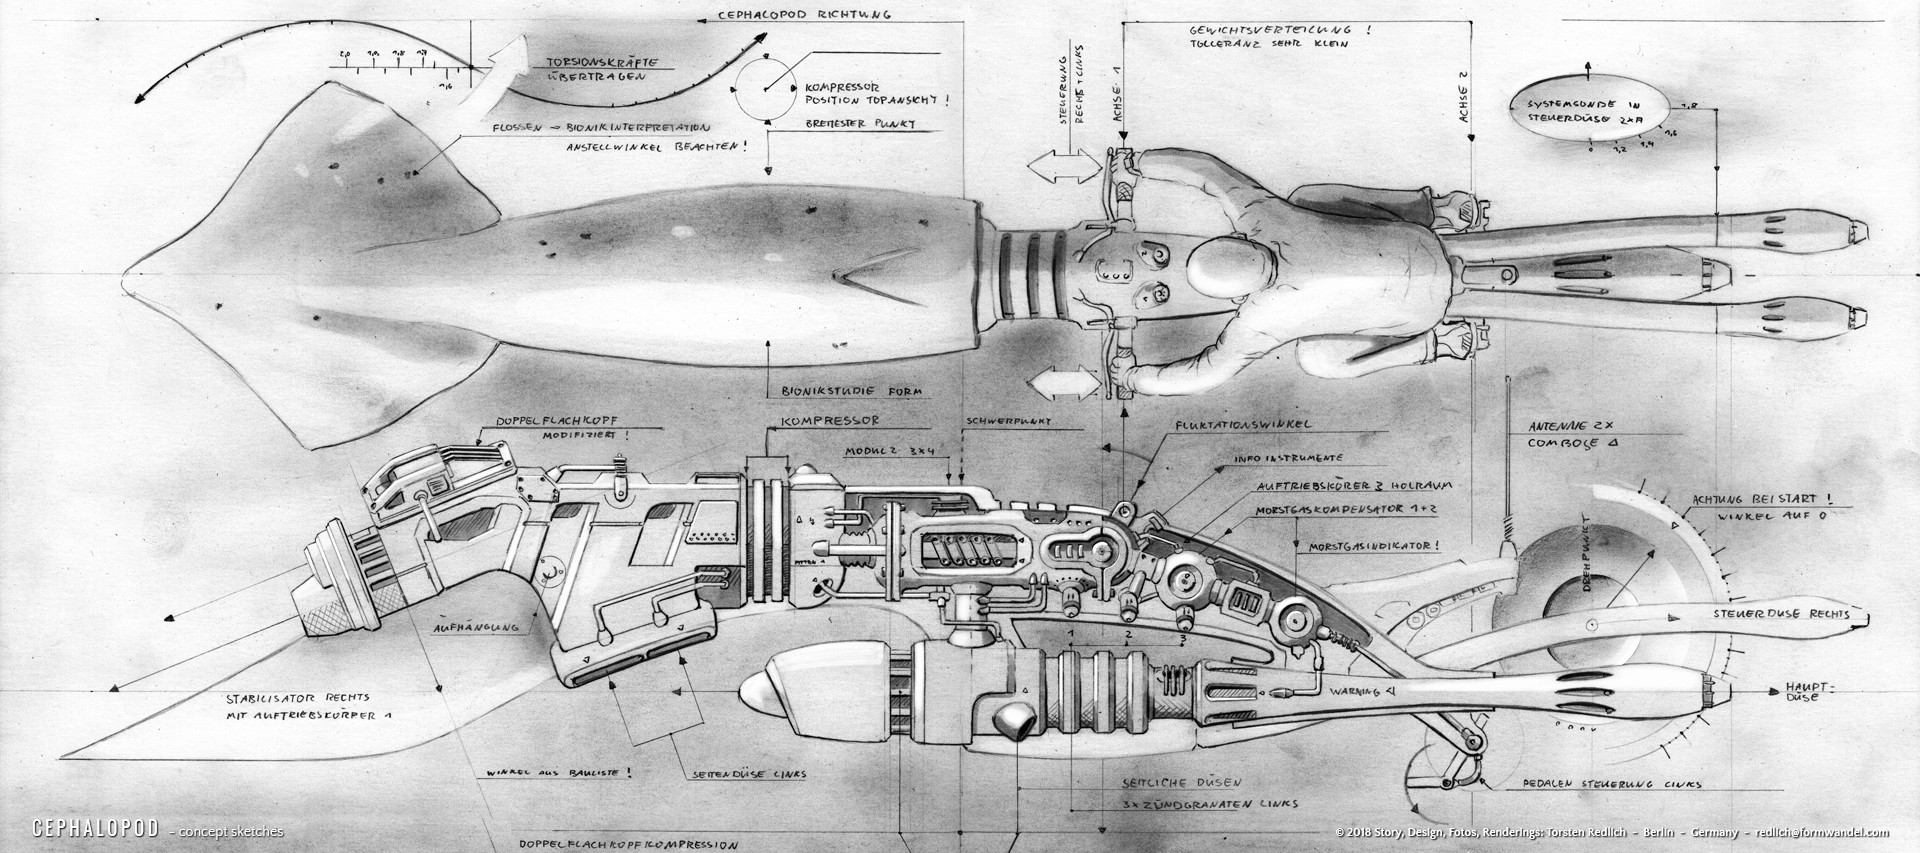 CEPHALOPOD - Giant Squid - design drawings 1